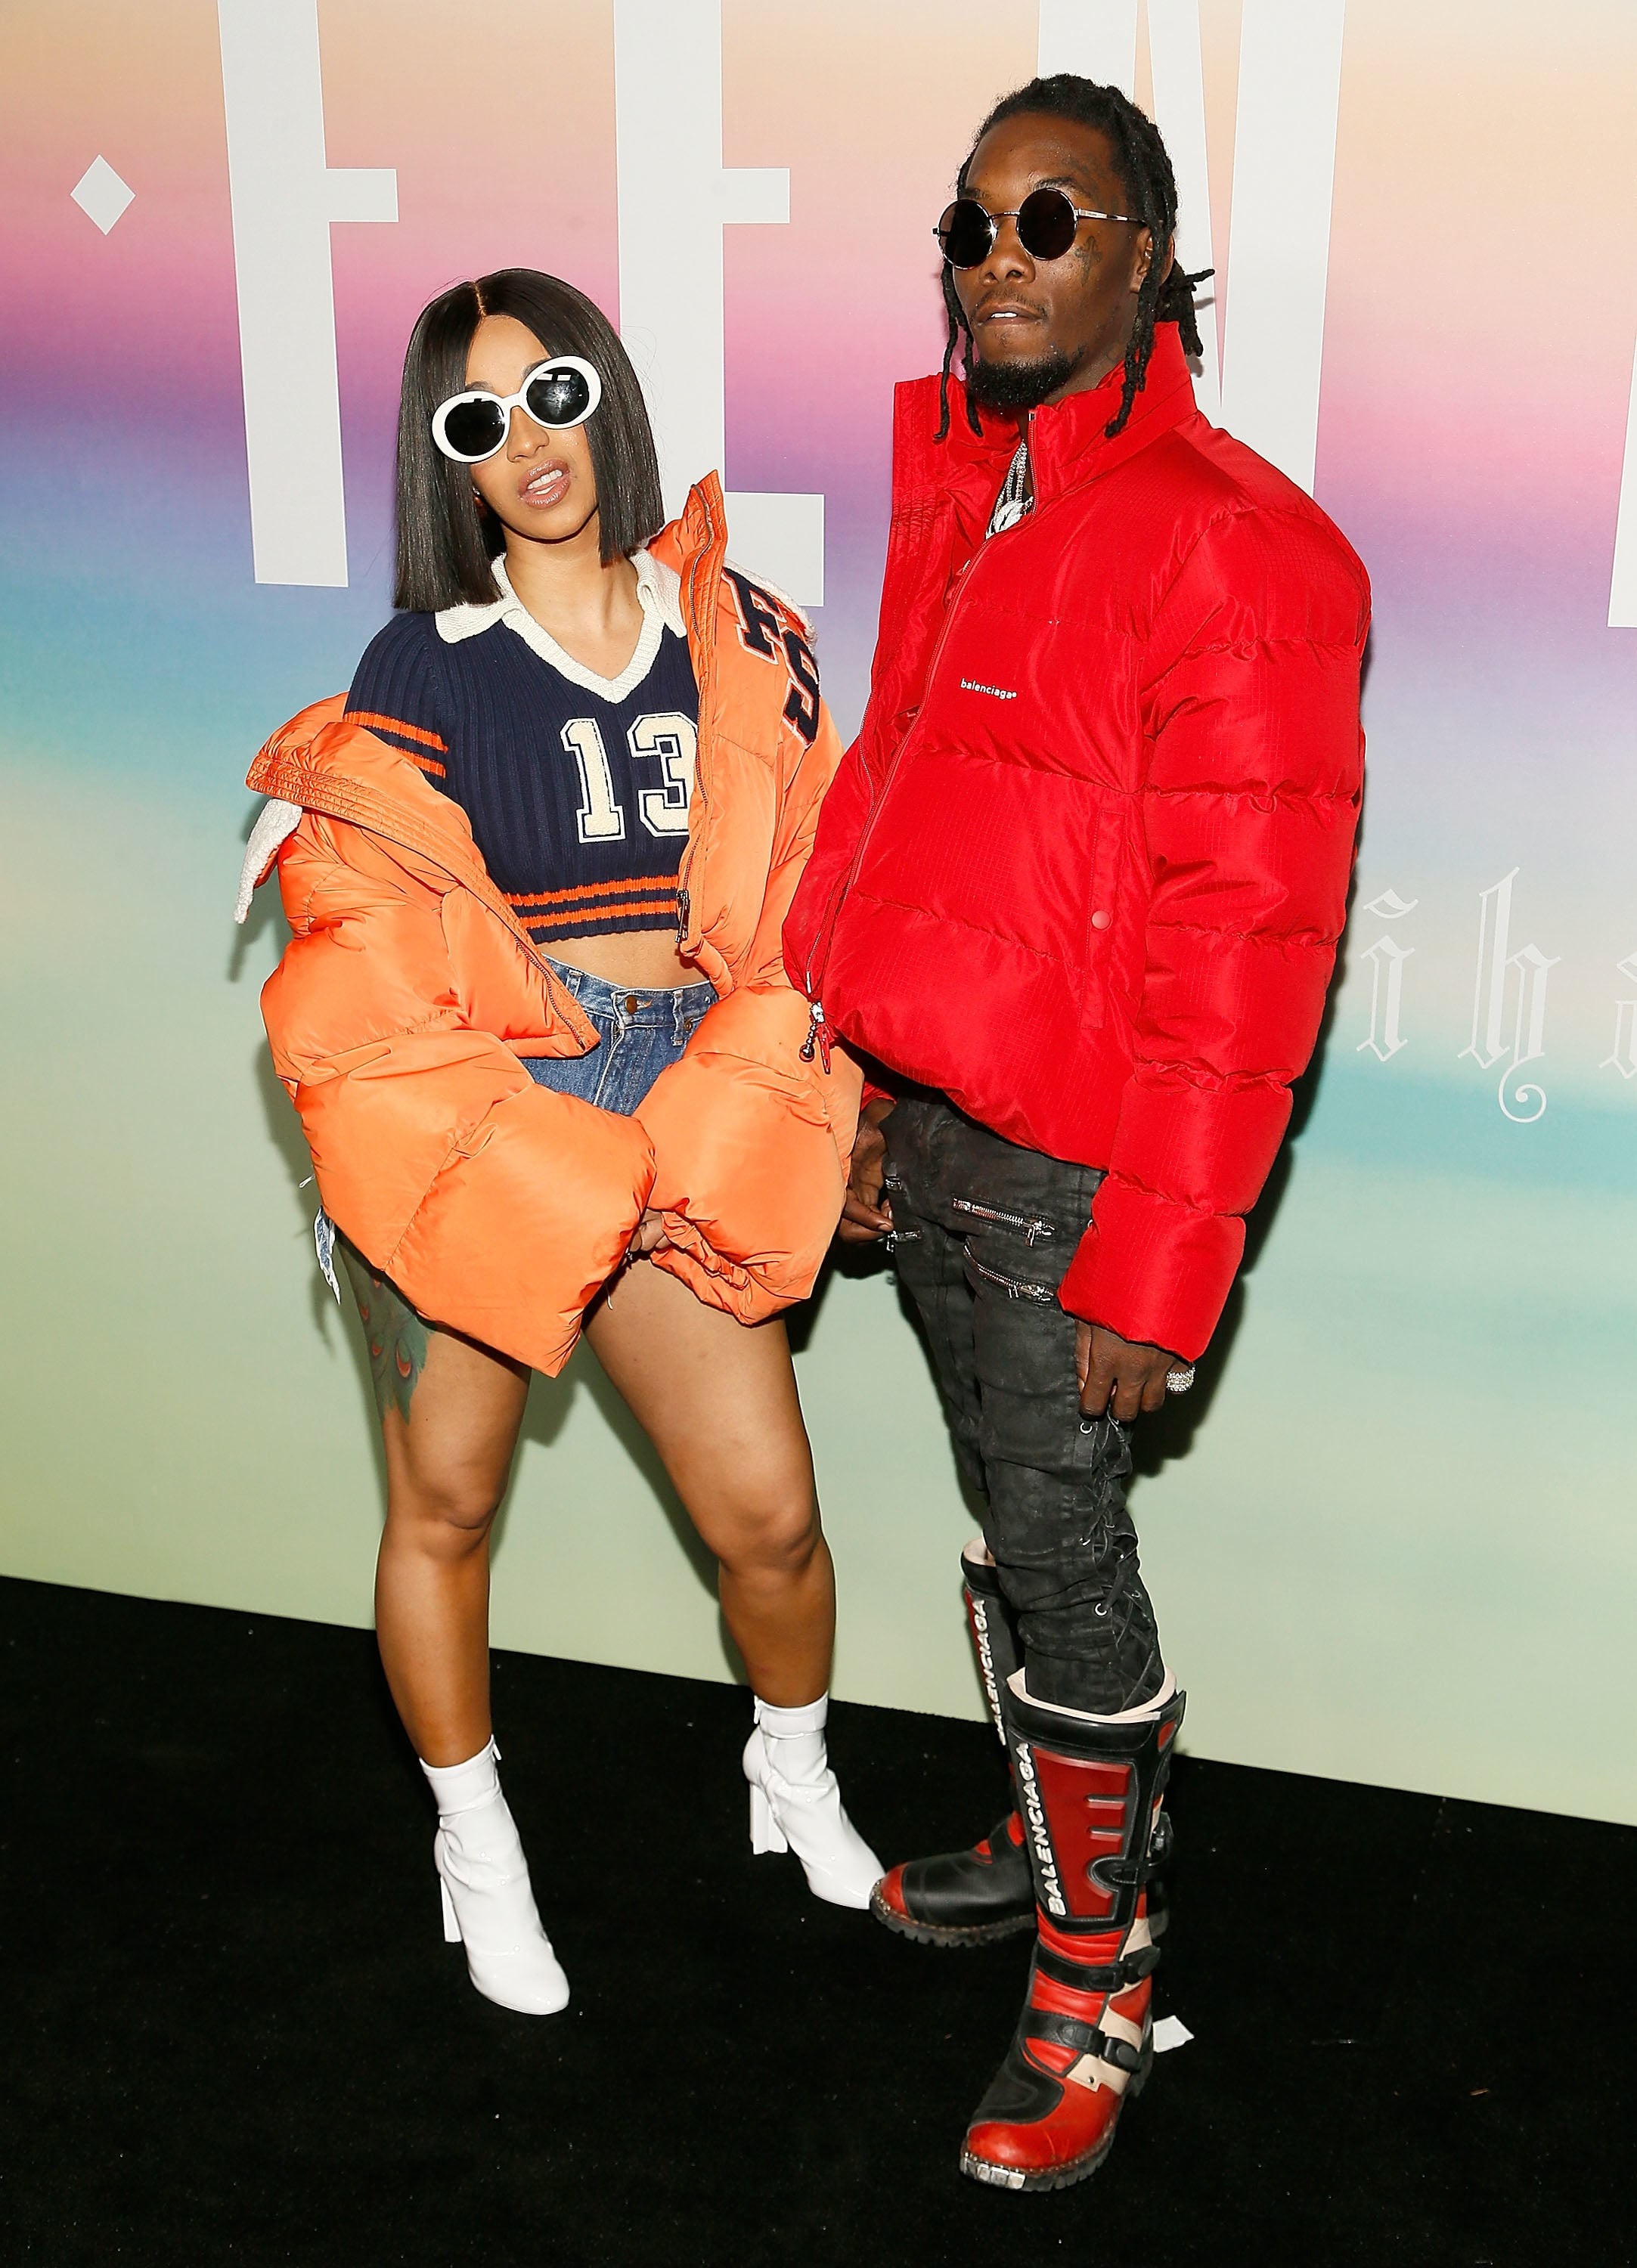 Mlk Memorial Postponed Due To Hurricane Irene as well Obama Inspires Morehouse Graduates With  mencement Speech additionally Article4831767 besides Zaris Ex Hubby Passes On moreover Cardi B Offset Fenty Spring 2018 Show. on boycott 2017 oscar memes